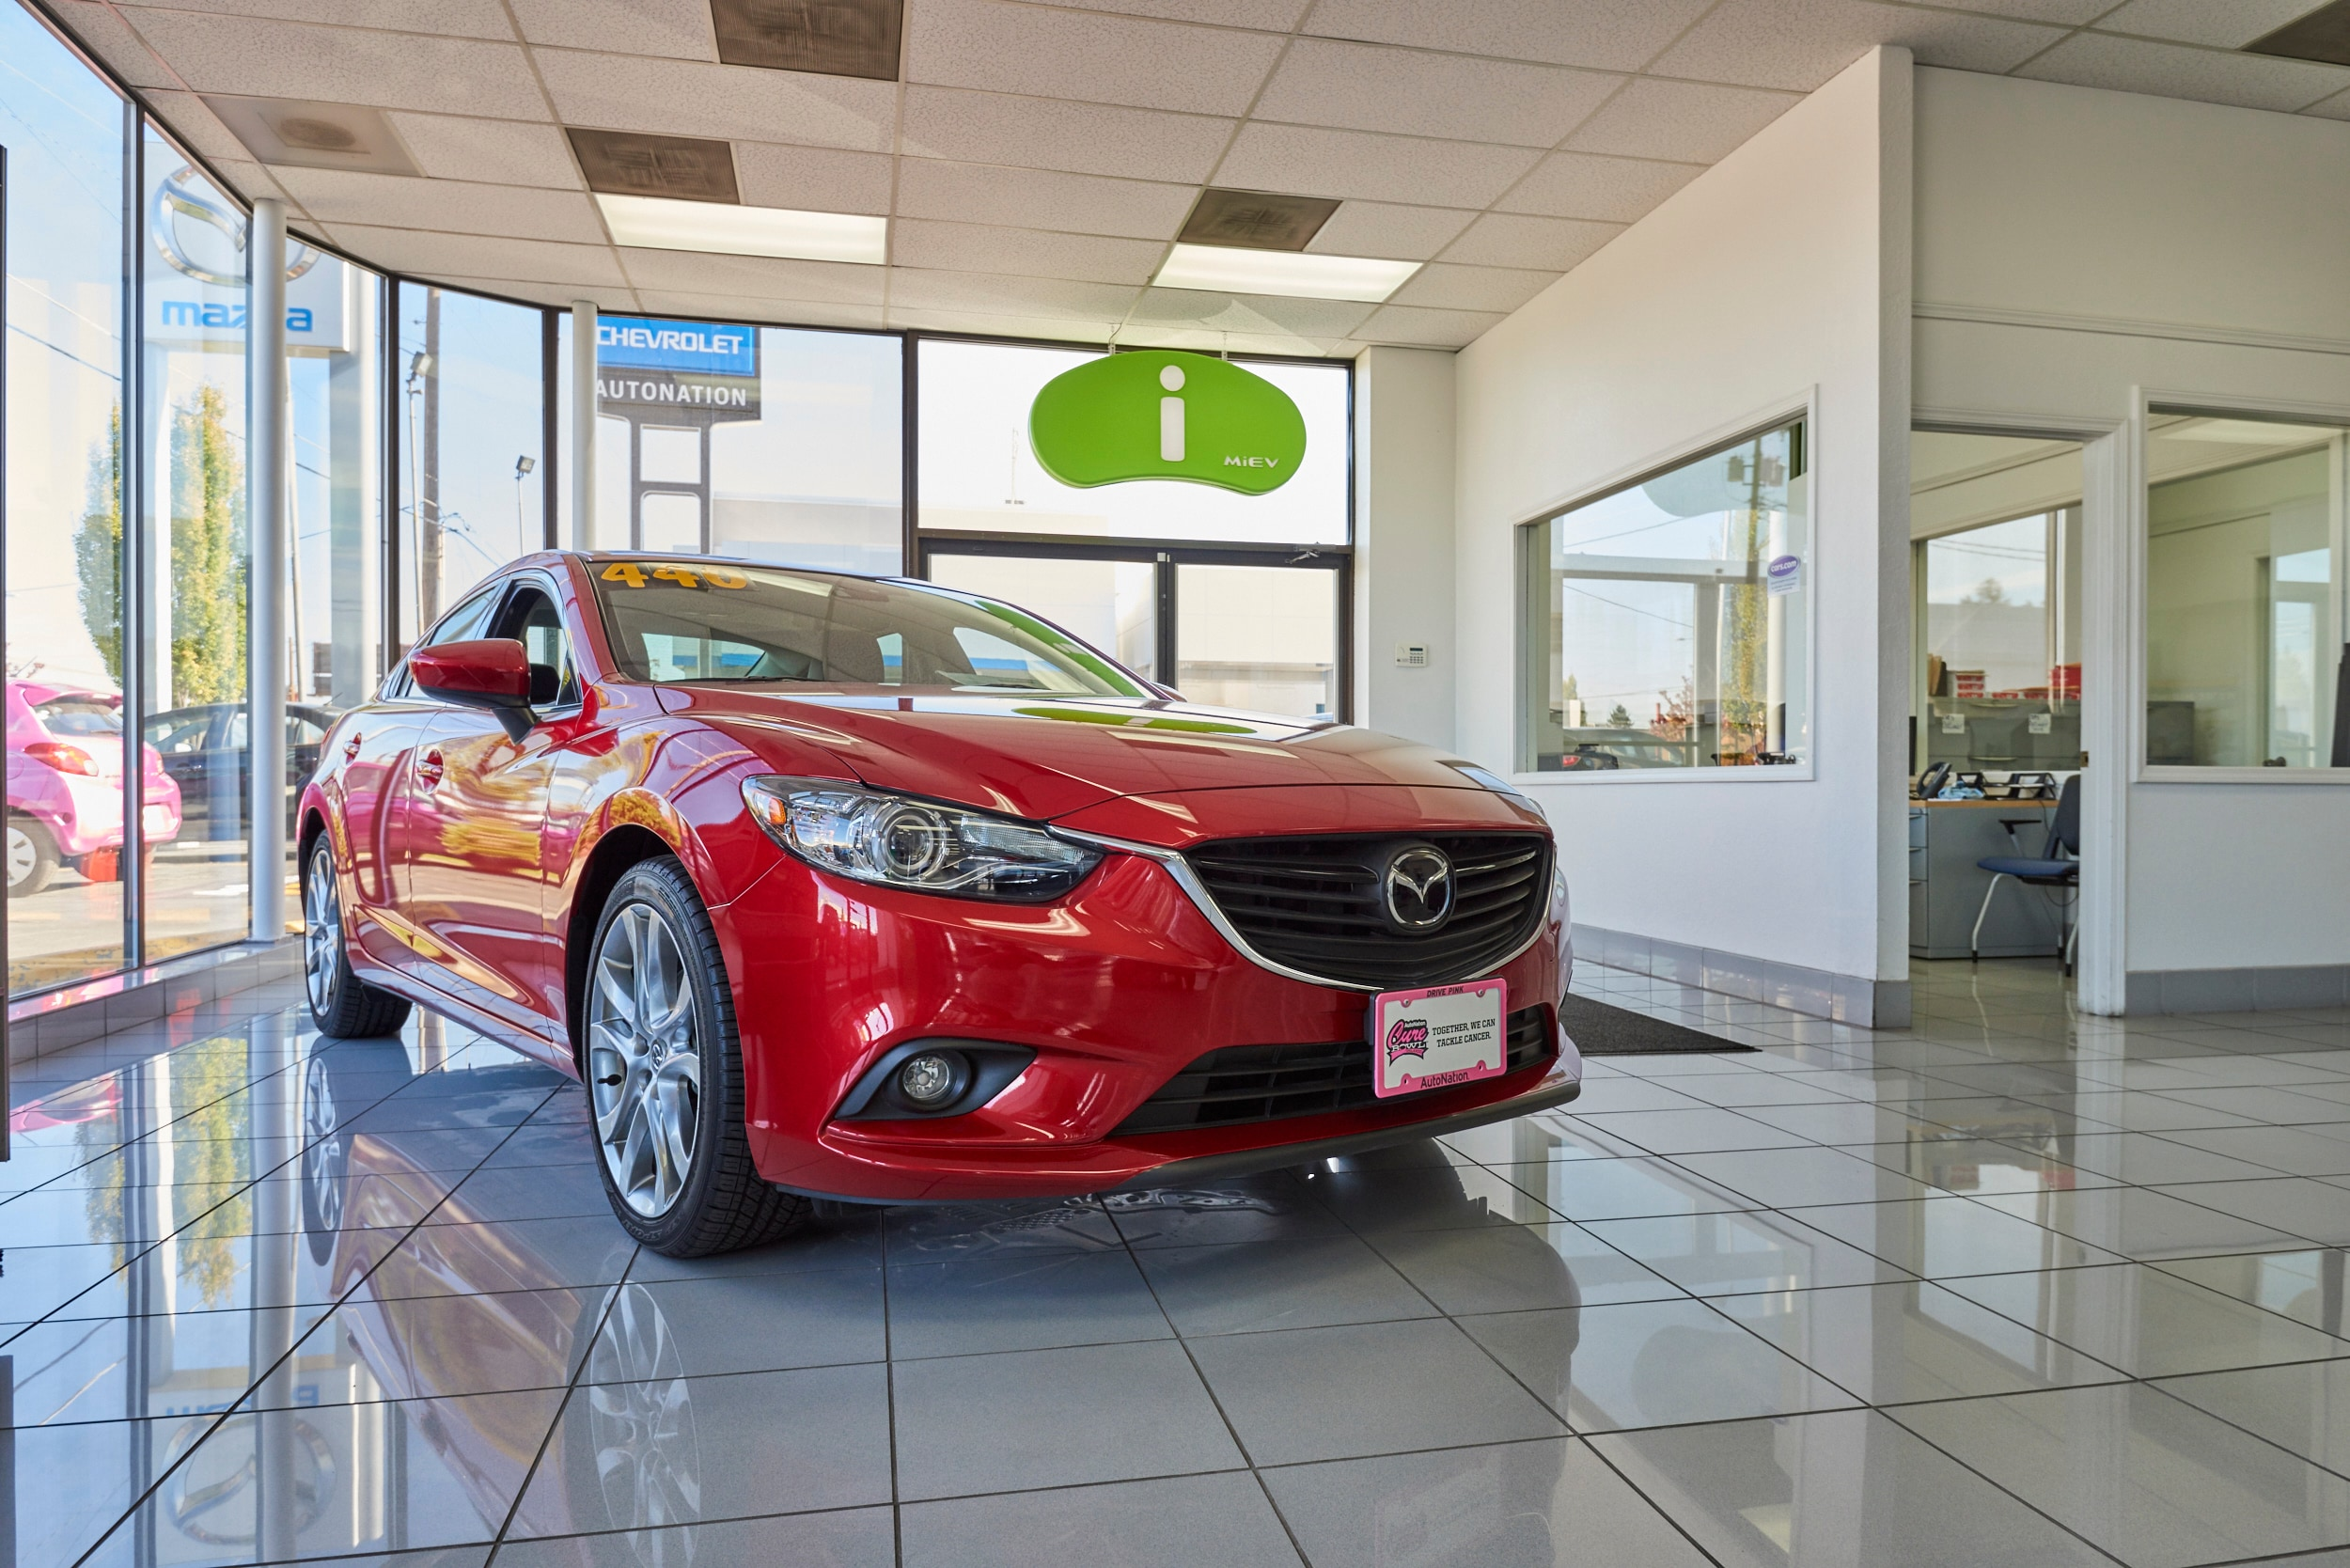 westowne anniversary locations dealership and dealer service sales ontario mazda etobicoke